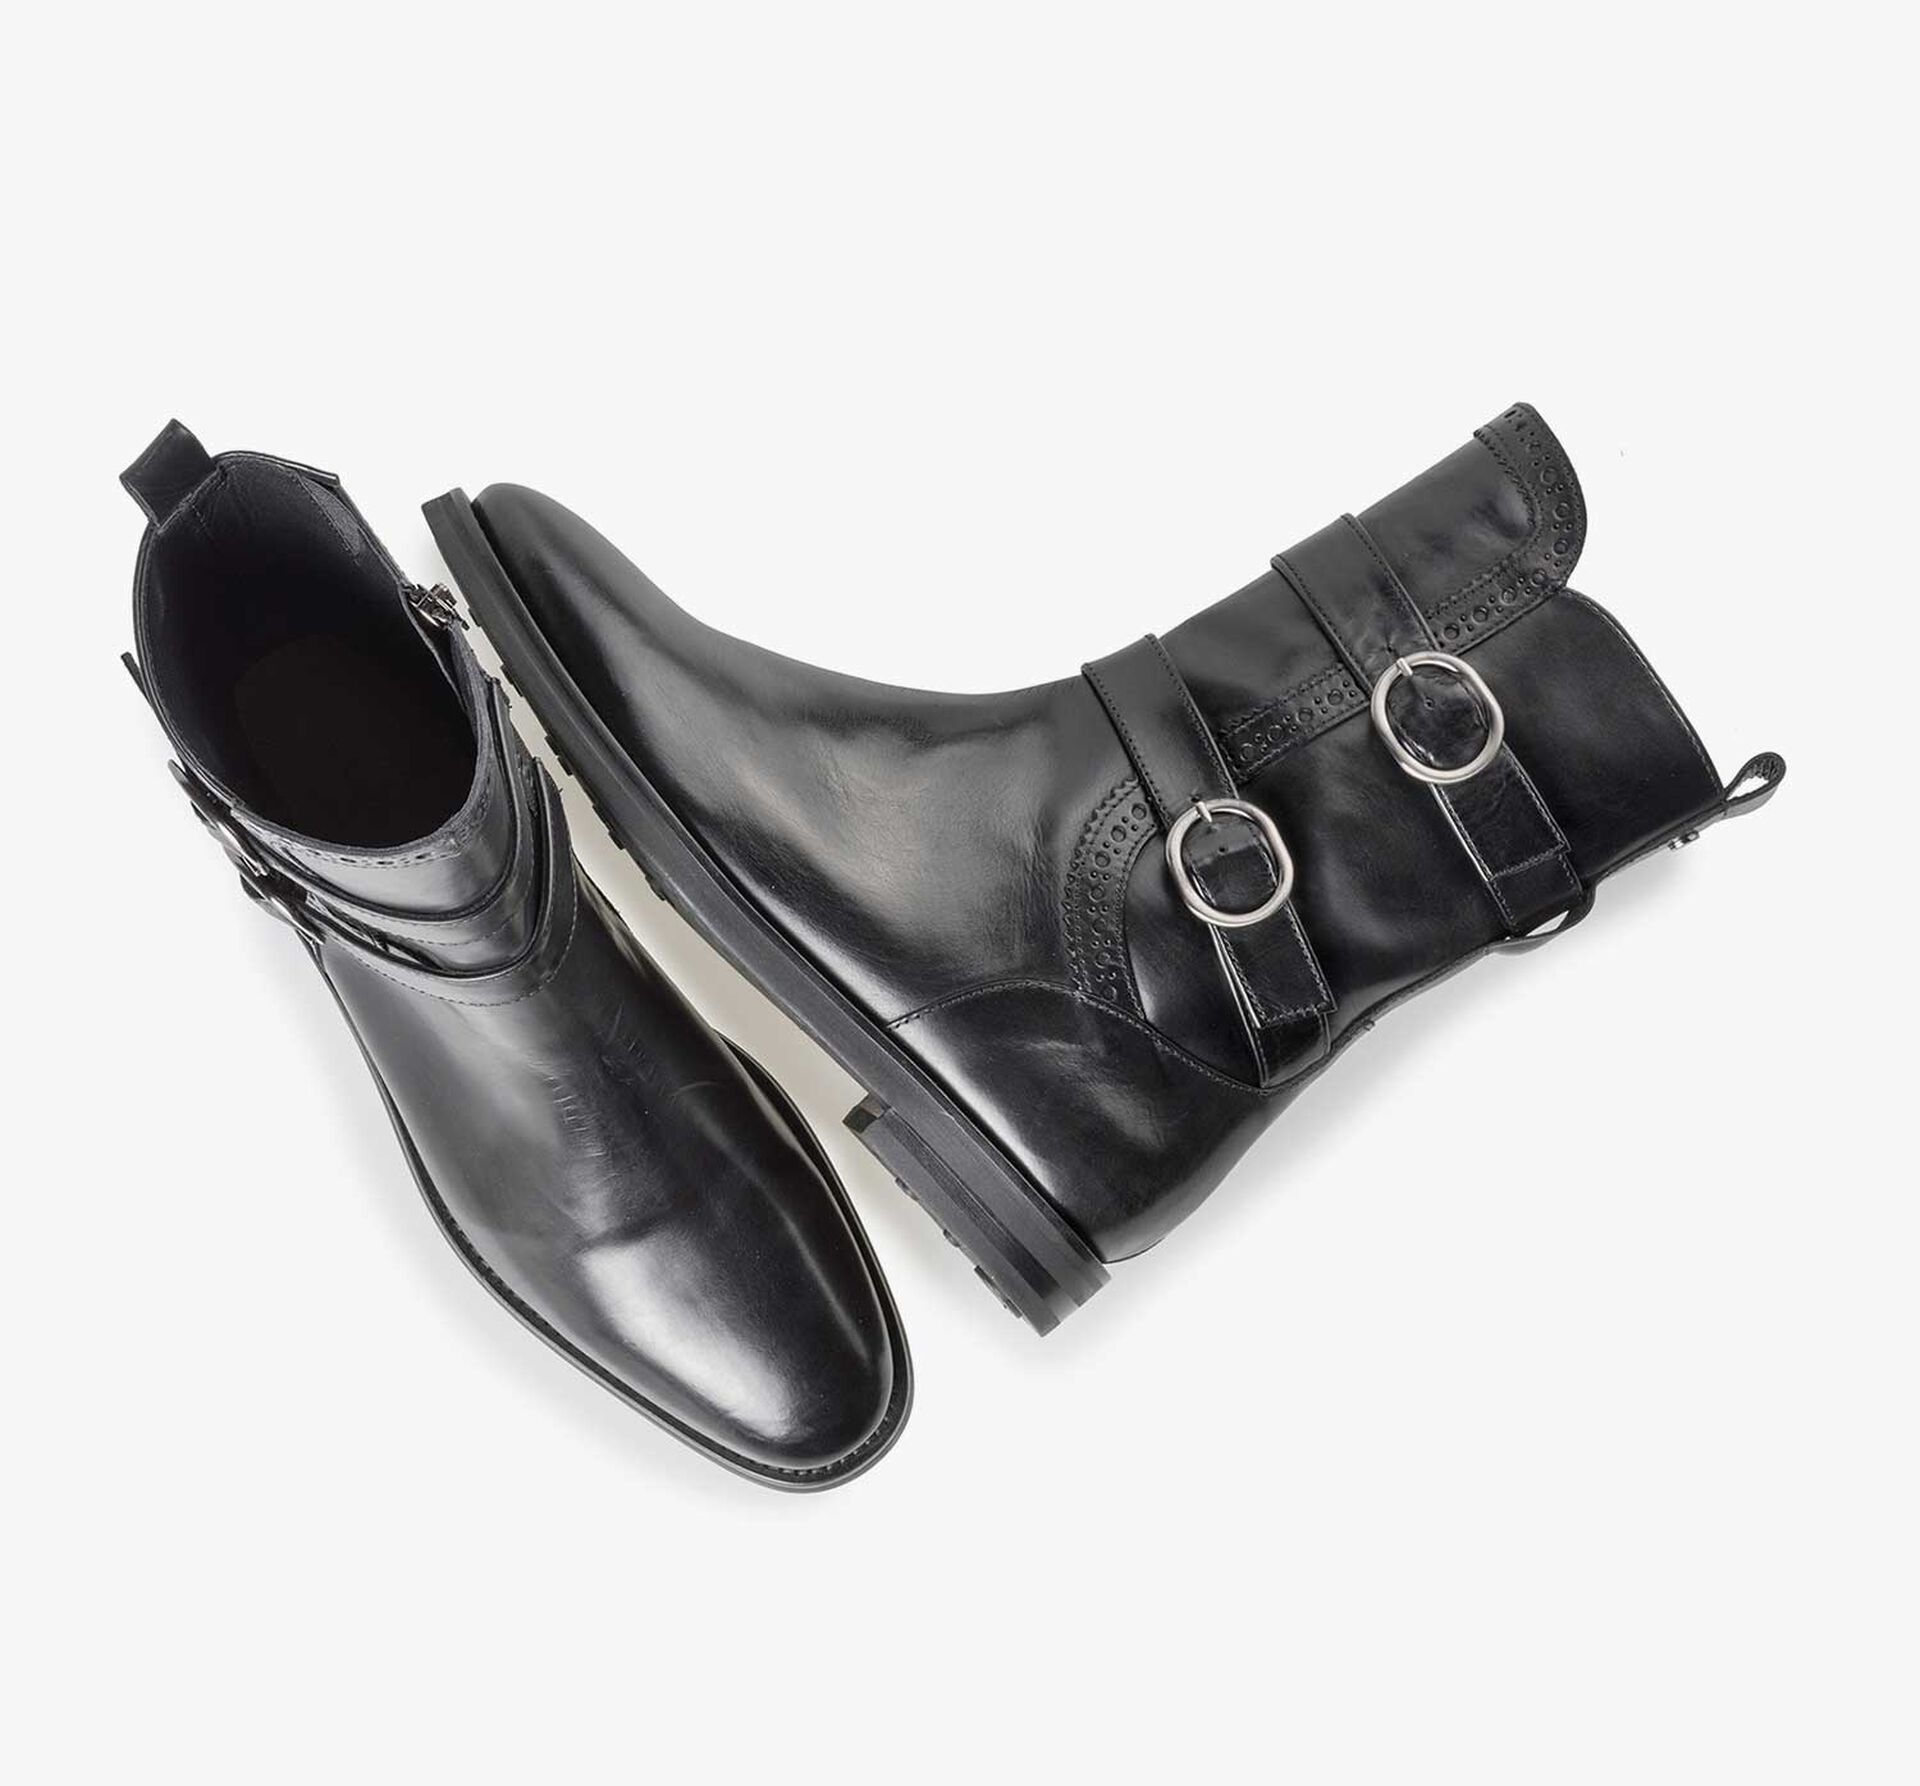 Black calf leather buckle boot